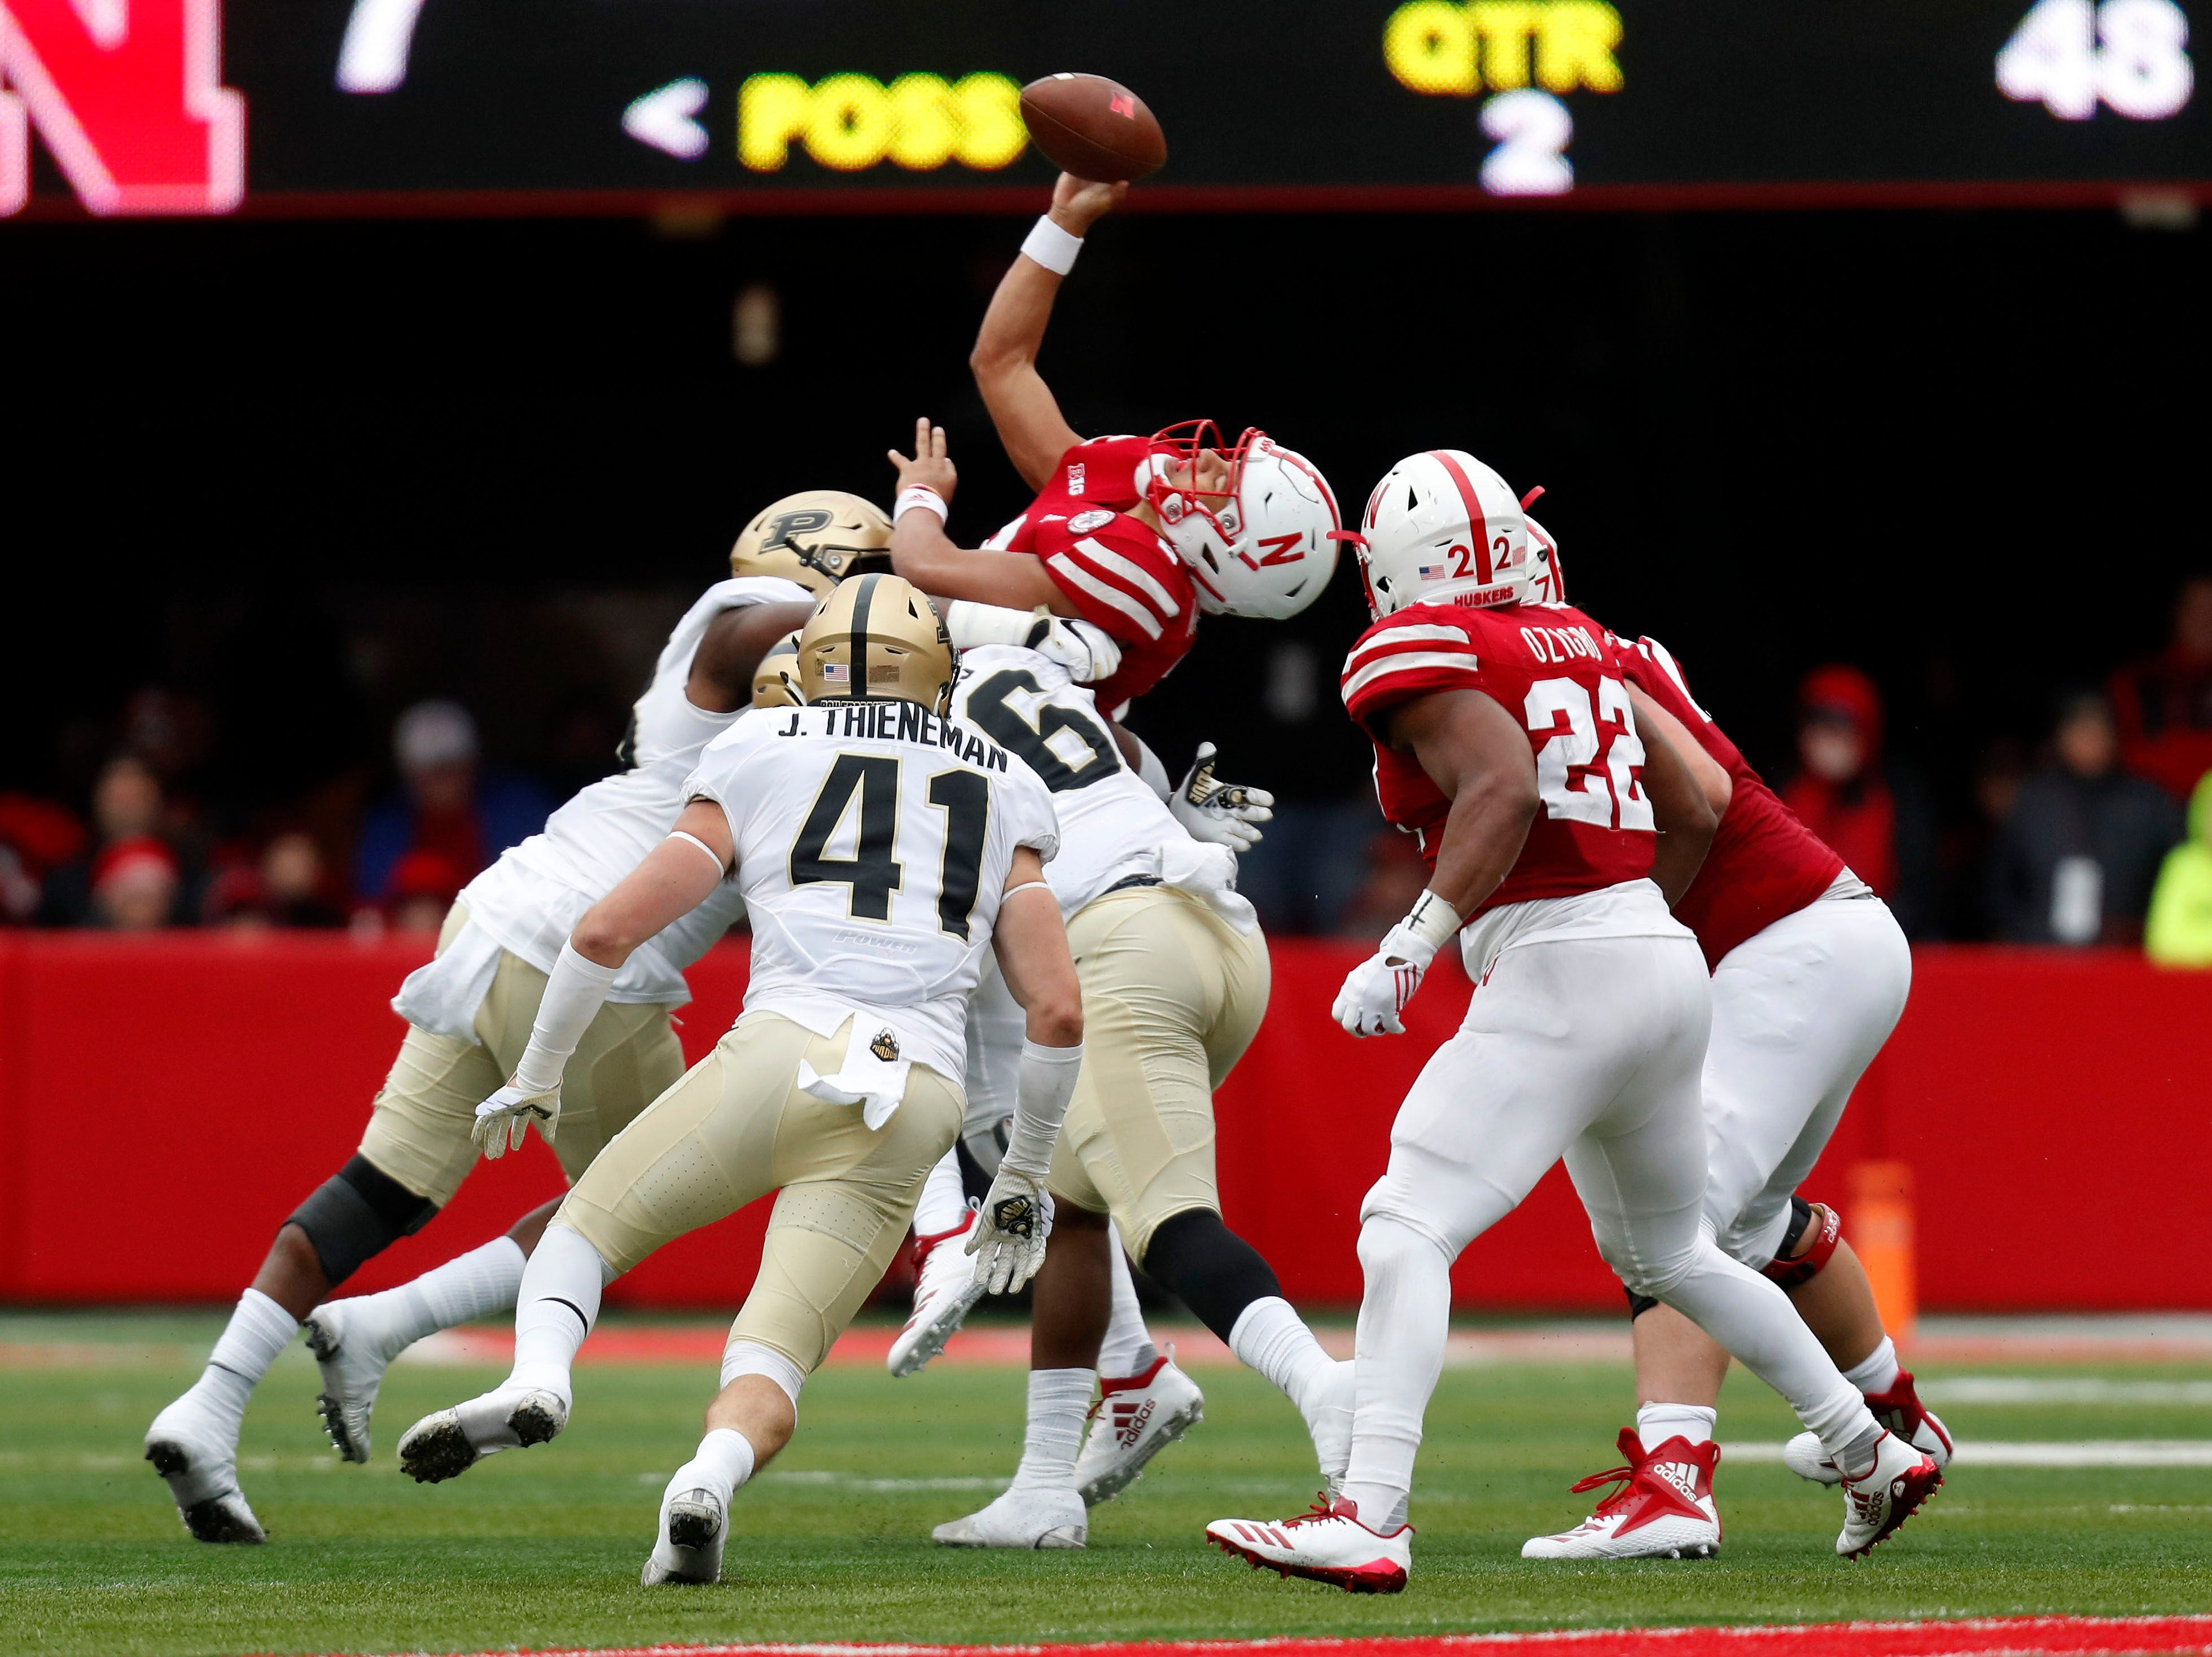 Sep 29, 2018; Lincoln, NE, USA; Nebraska Cornhuskers quarterback Adrian Martinez (2) is tackled as he gets the pass off against the Purdue Boilermakers in the first half at Memorial Stadium. Mandatory Credit: Bruce Thorson-USA TODAY Sports